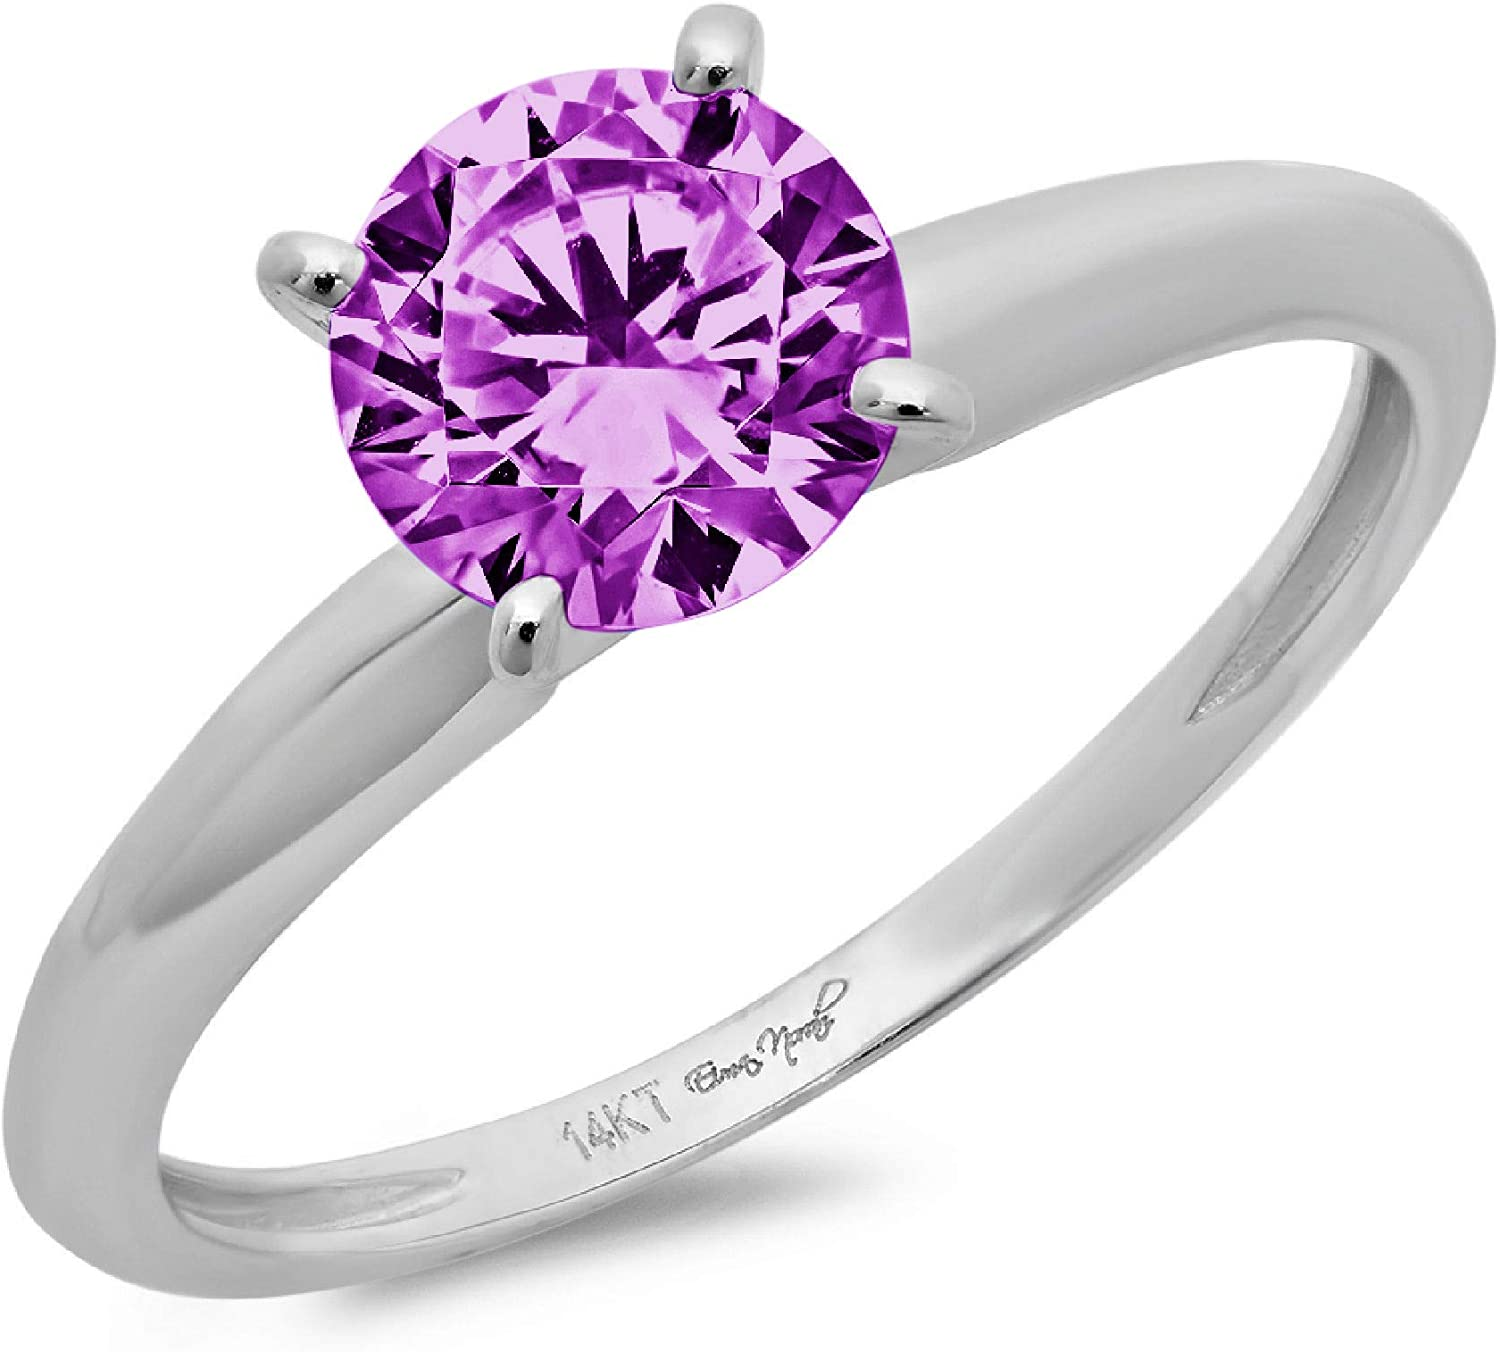 1.95 ct Brilliant Round Cut Solitaire Flawless Simulated CZ Purple Alexandrite Ideal VVS1 4-Prong Engagement Wedding Bridal Promise Anniversary Designer Ring in Solid 14k White Gold for Women